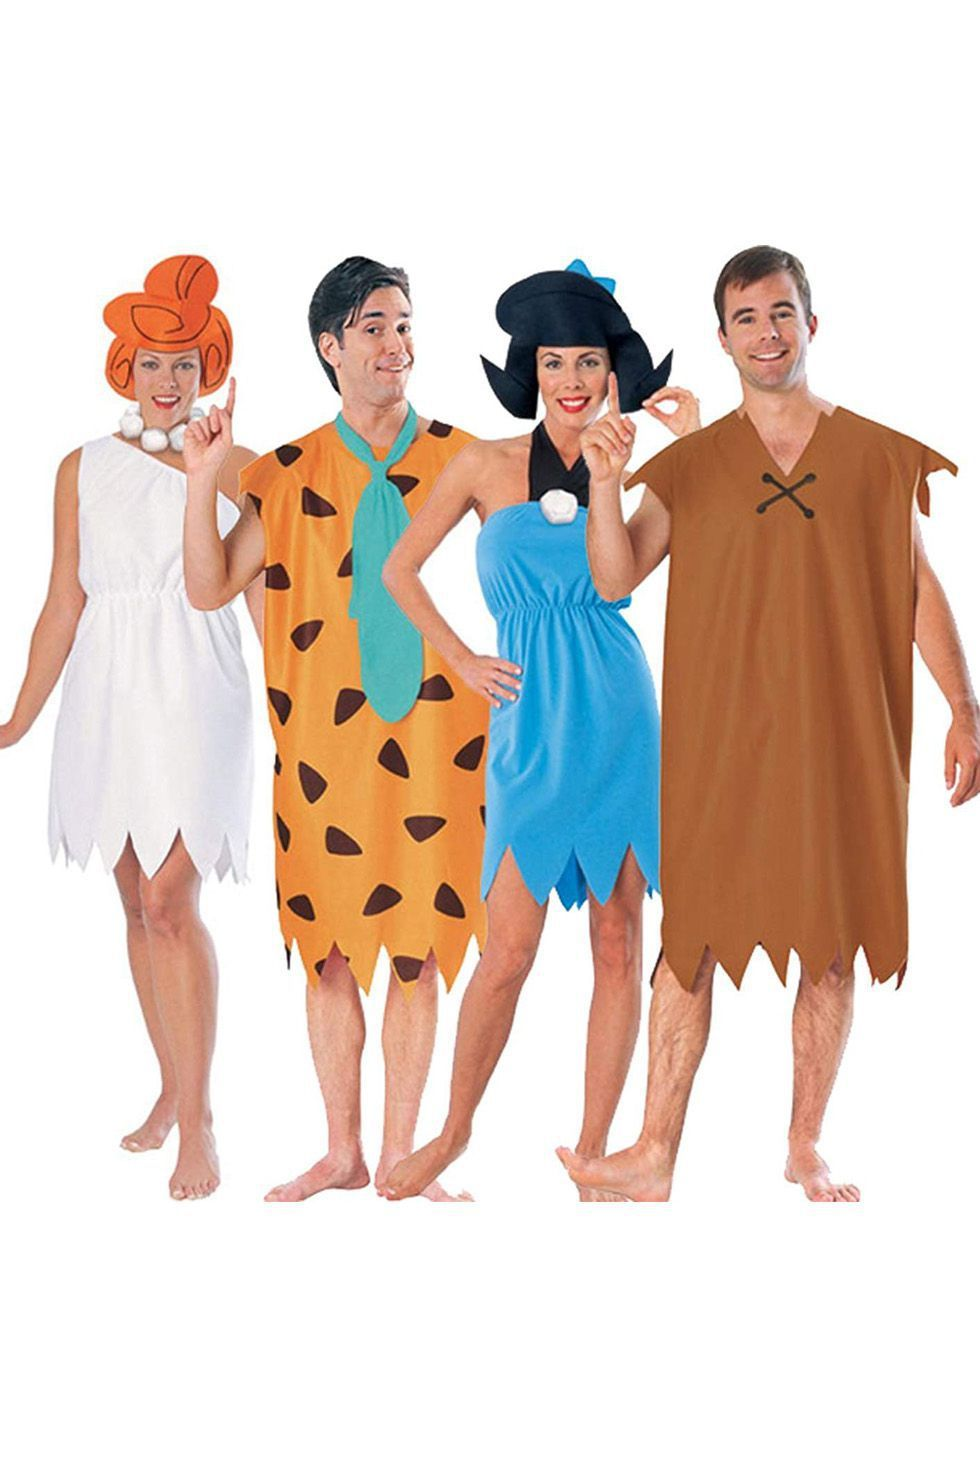 Marvelous 25 Cute Group Halloween Costume Ideas   Easy DIY Friend Halloween Costumes